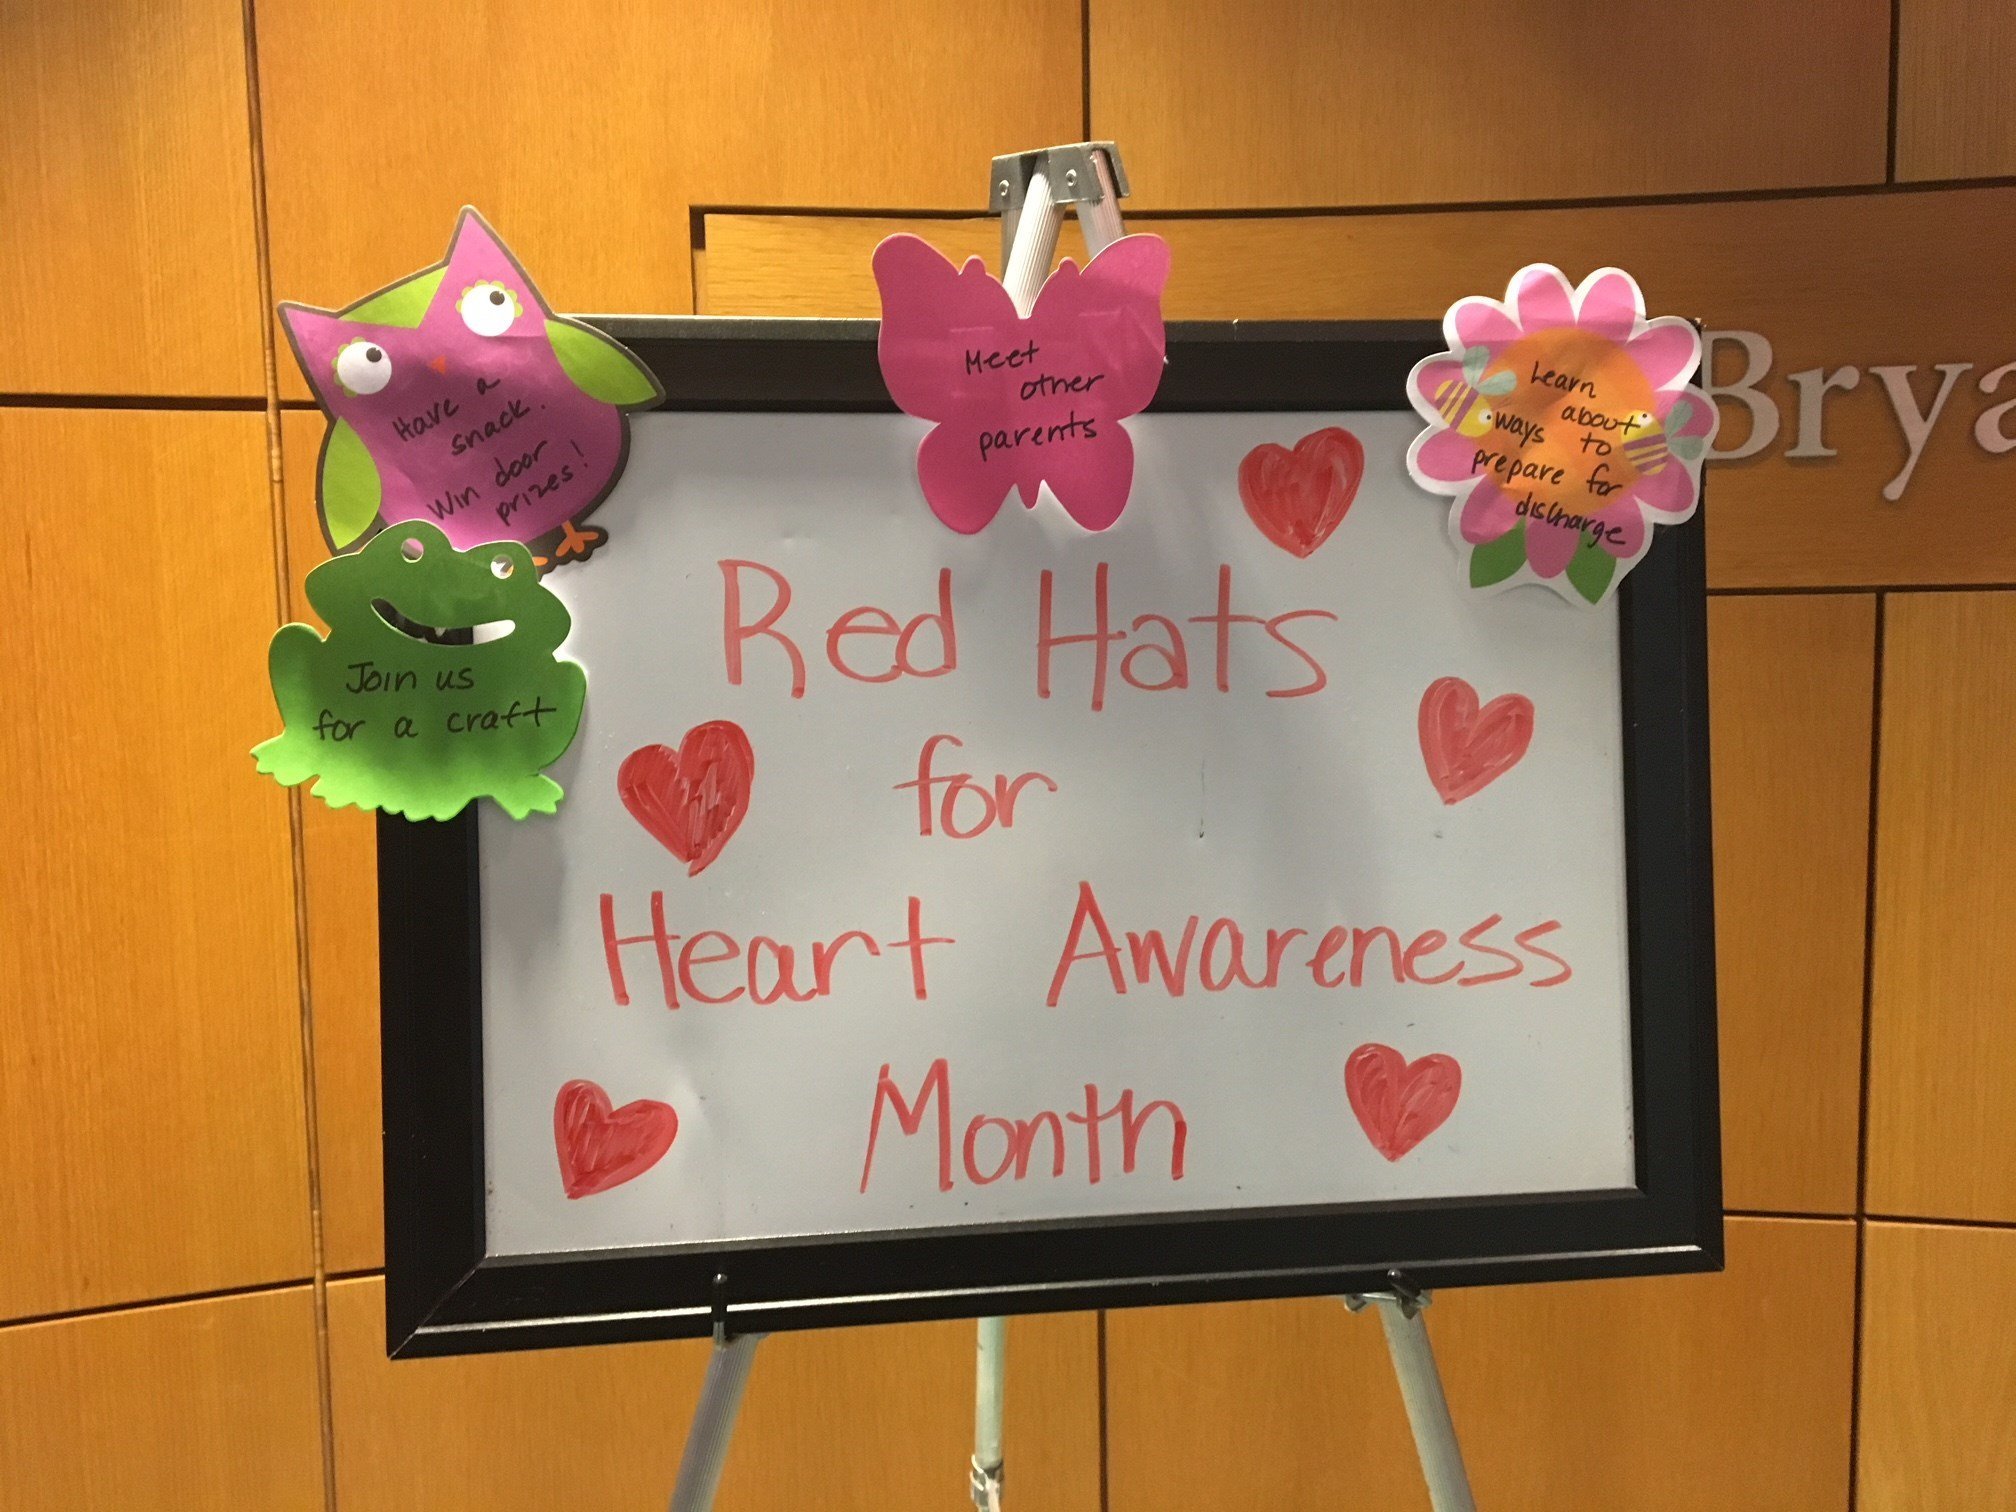 Greenville Memorial Hospital giving out red hats for Heart Association Month (FOX Carolina: 2/2/18).